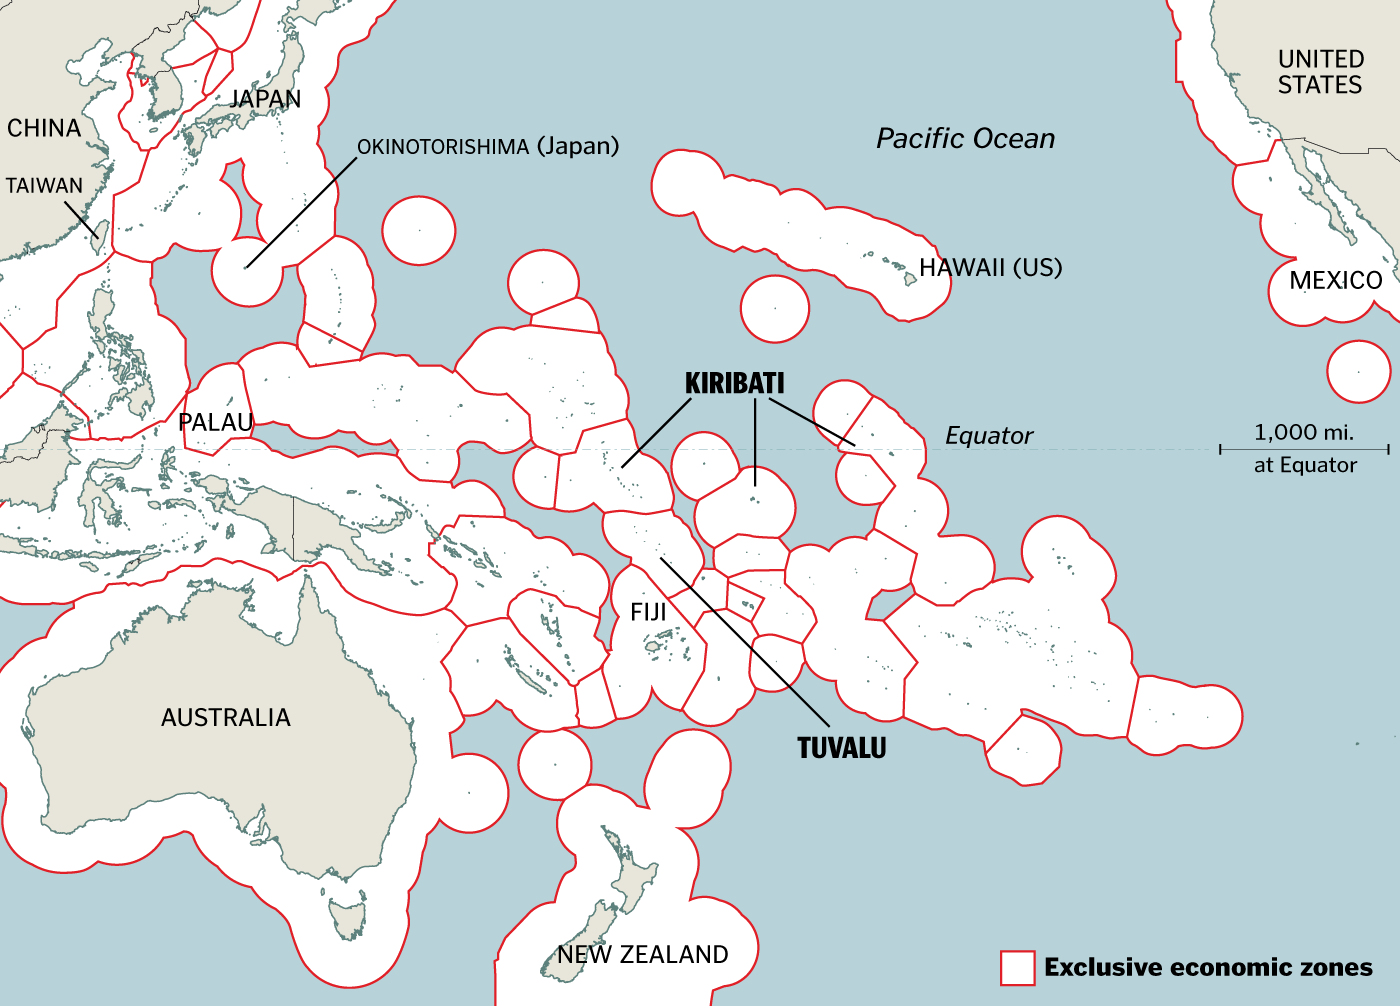 How old is the newest island in the world?